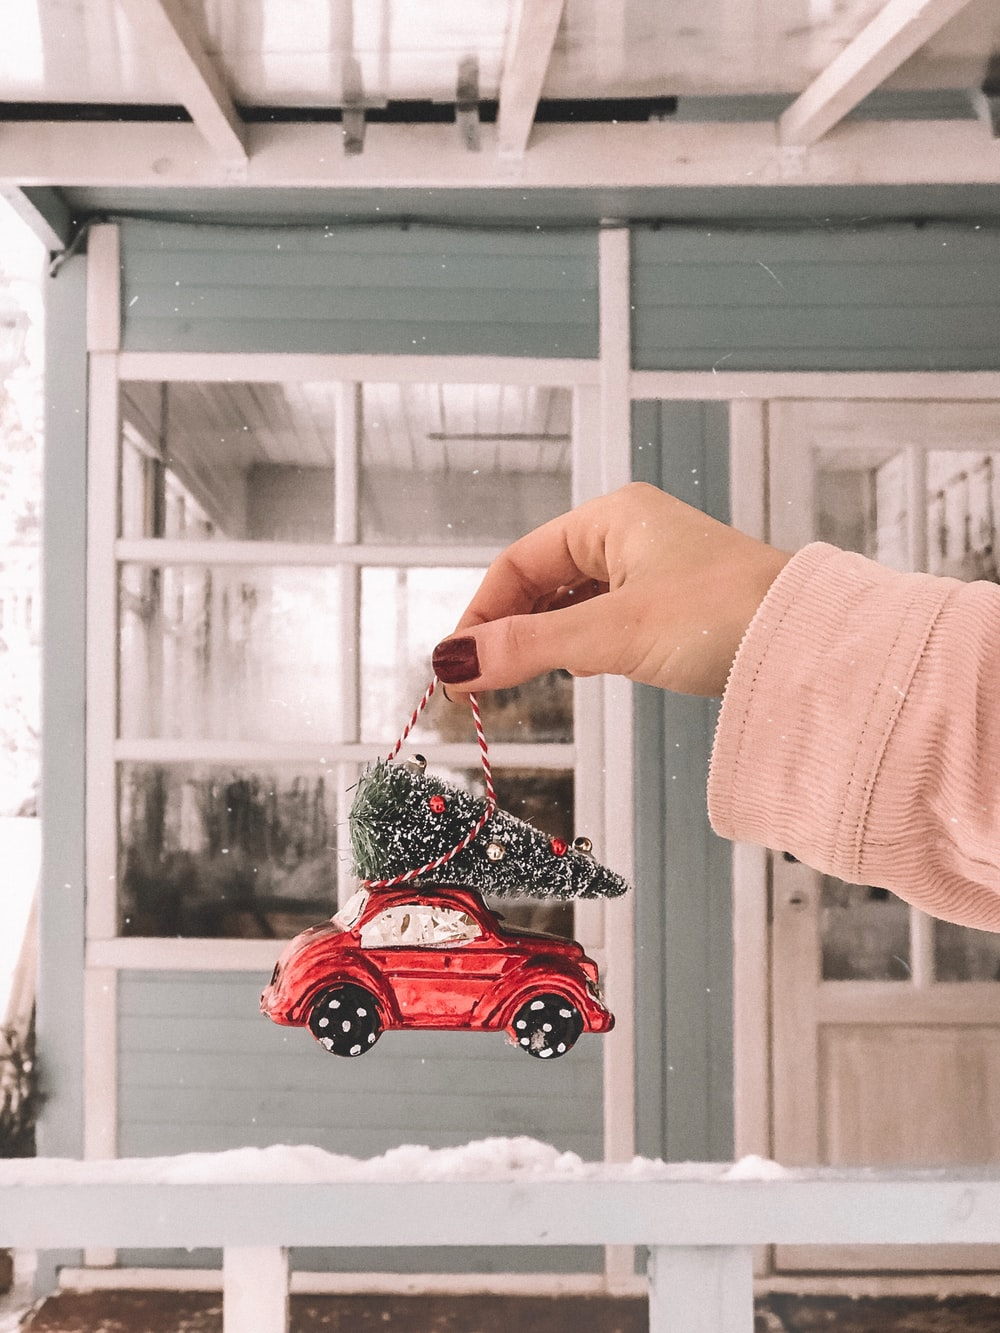 person holding red vehicle toy hanging decor